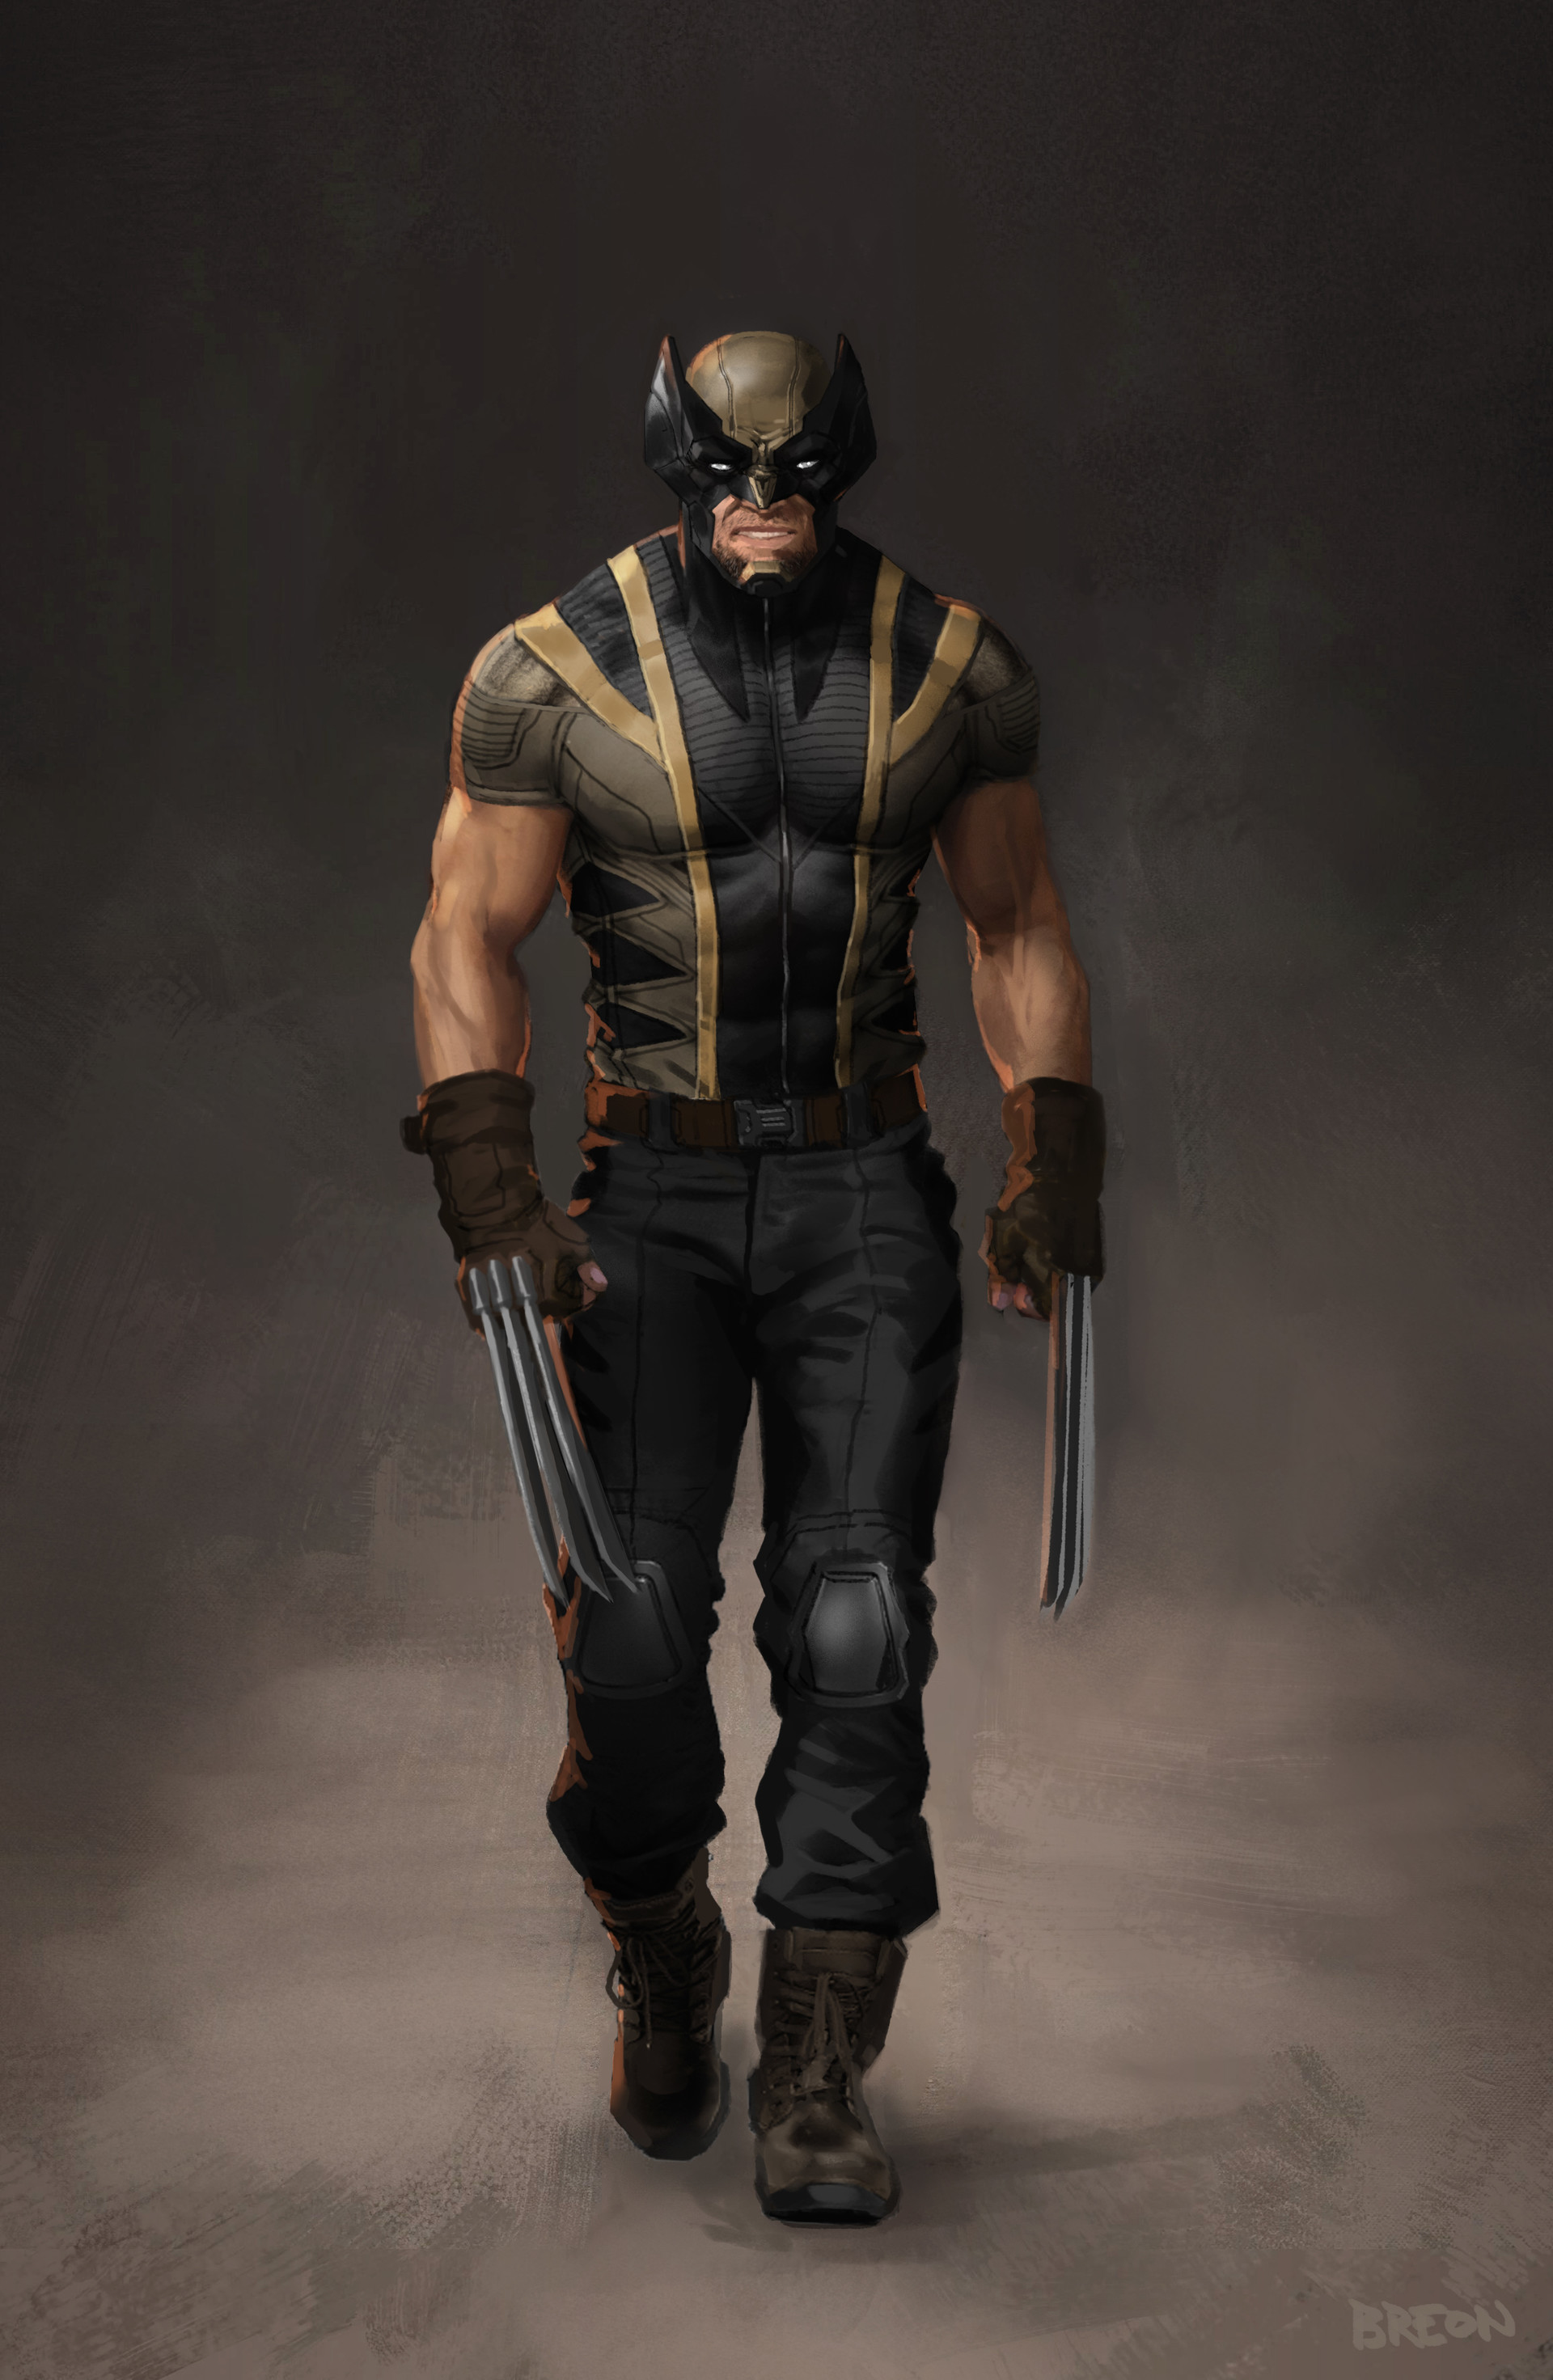 Mcu S Wolverine Concept By Tyler Breon Made By One Of The